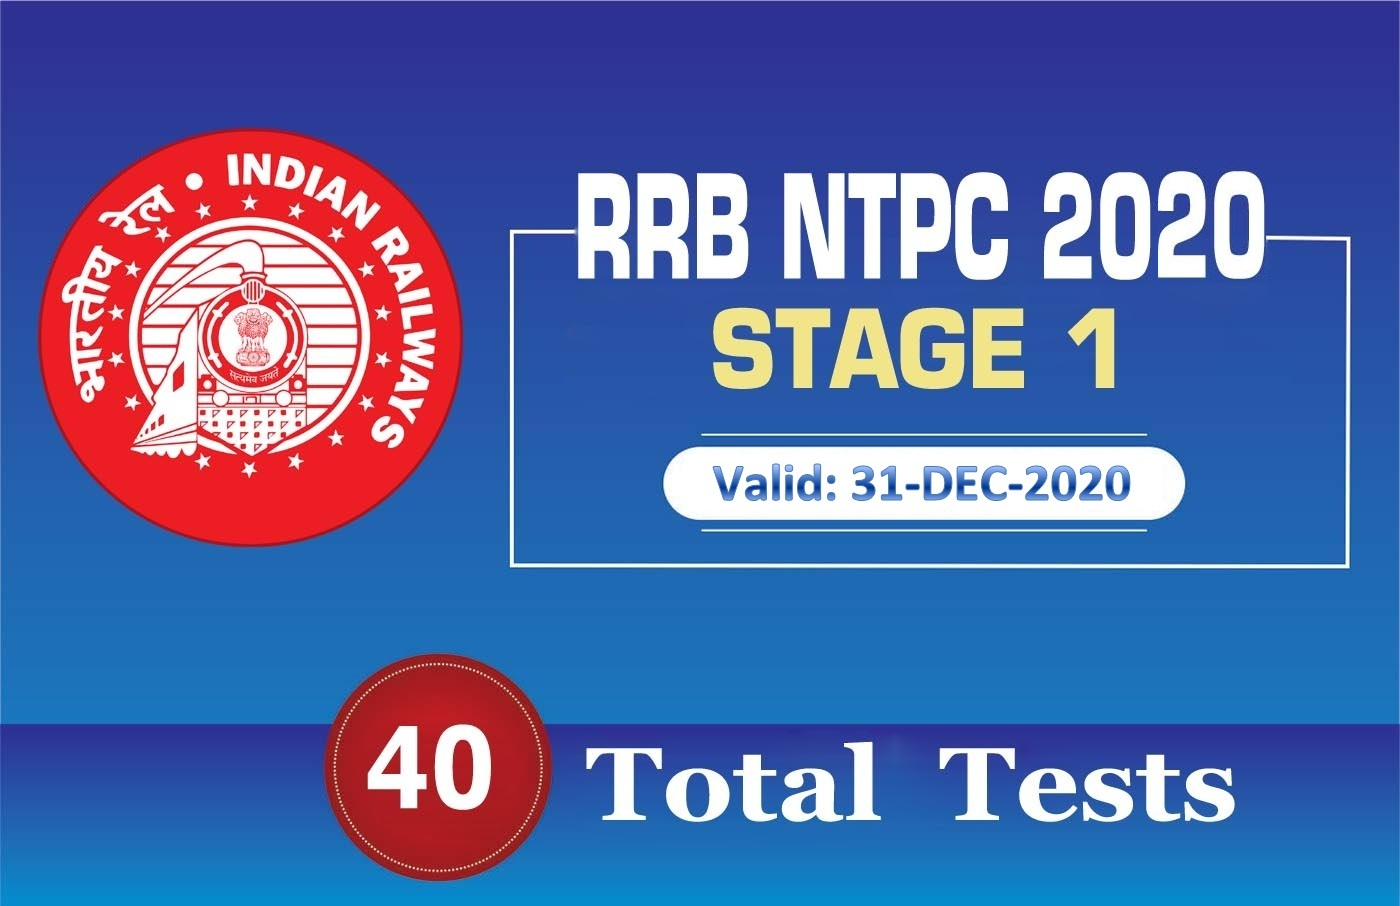 RRB NTPC 2020 STAGE 1